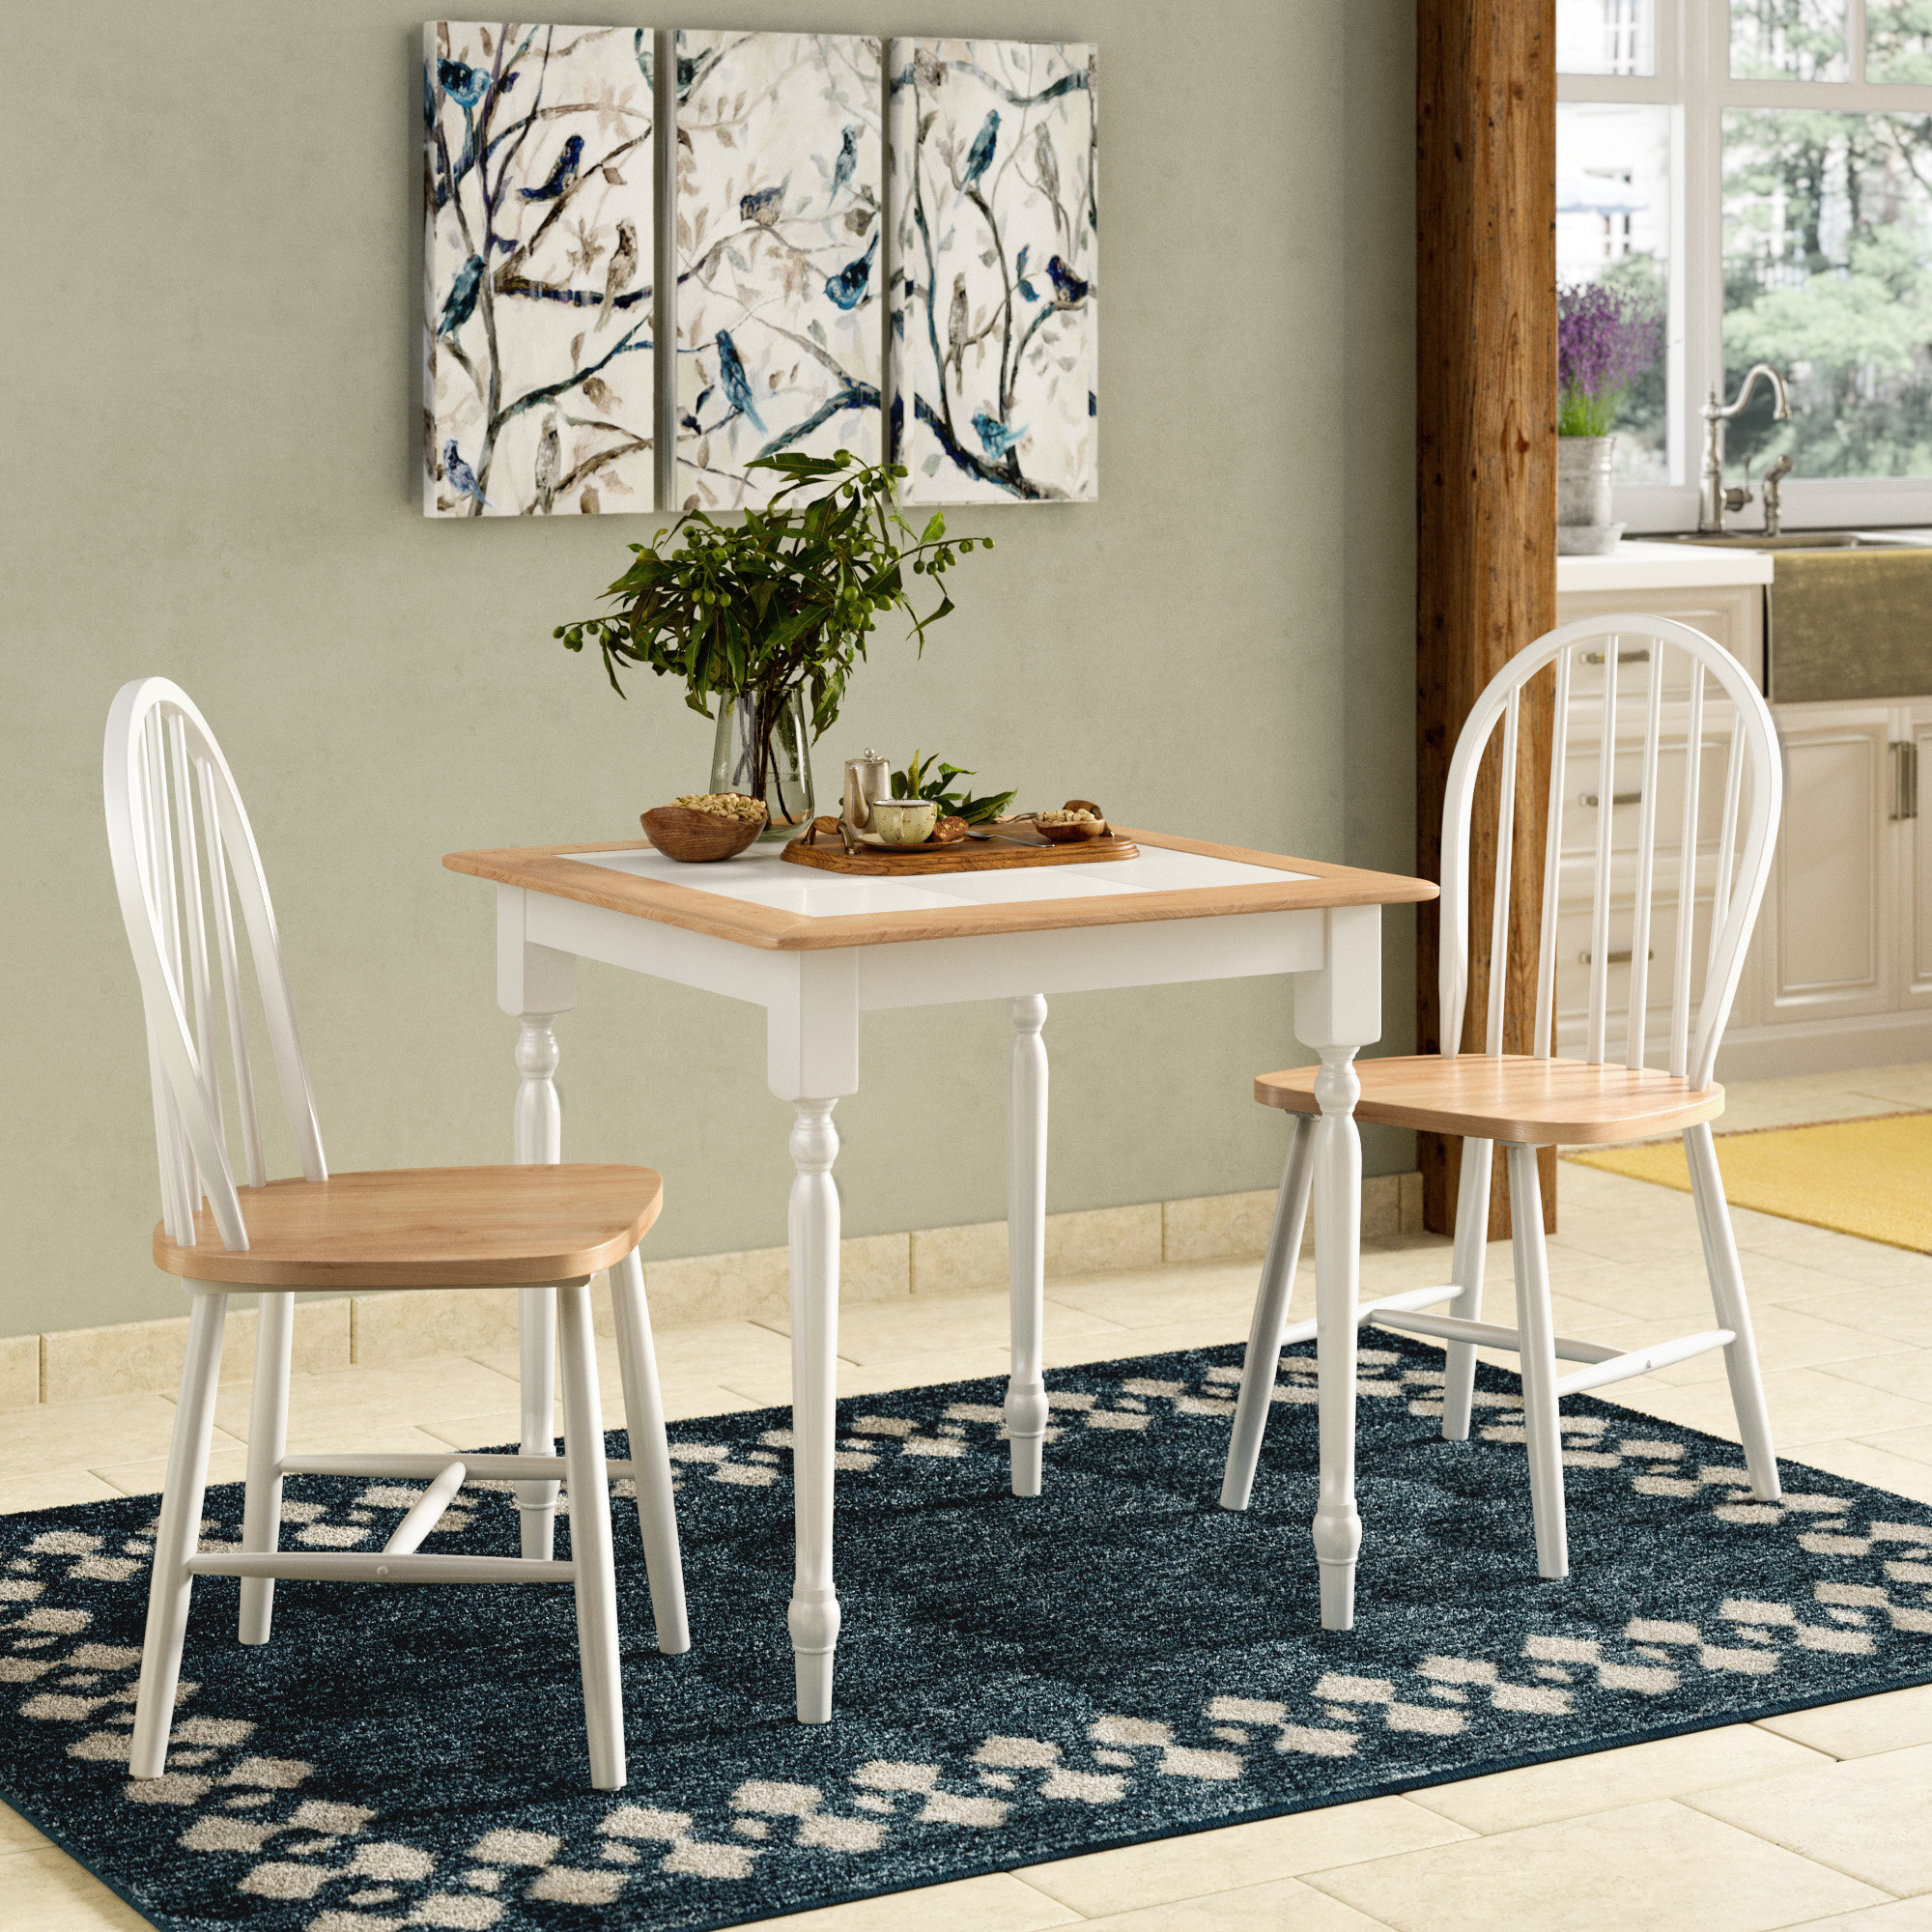 Llanas 3 Piece Dining Set In Most Up To Date Kinsler 3 Piece Bistro Sets (Image 14 of 20)